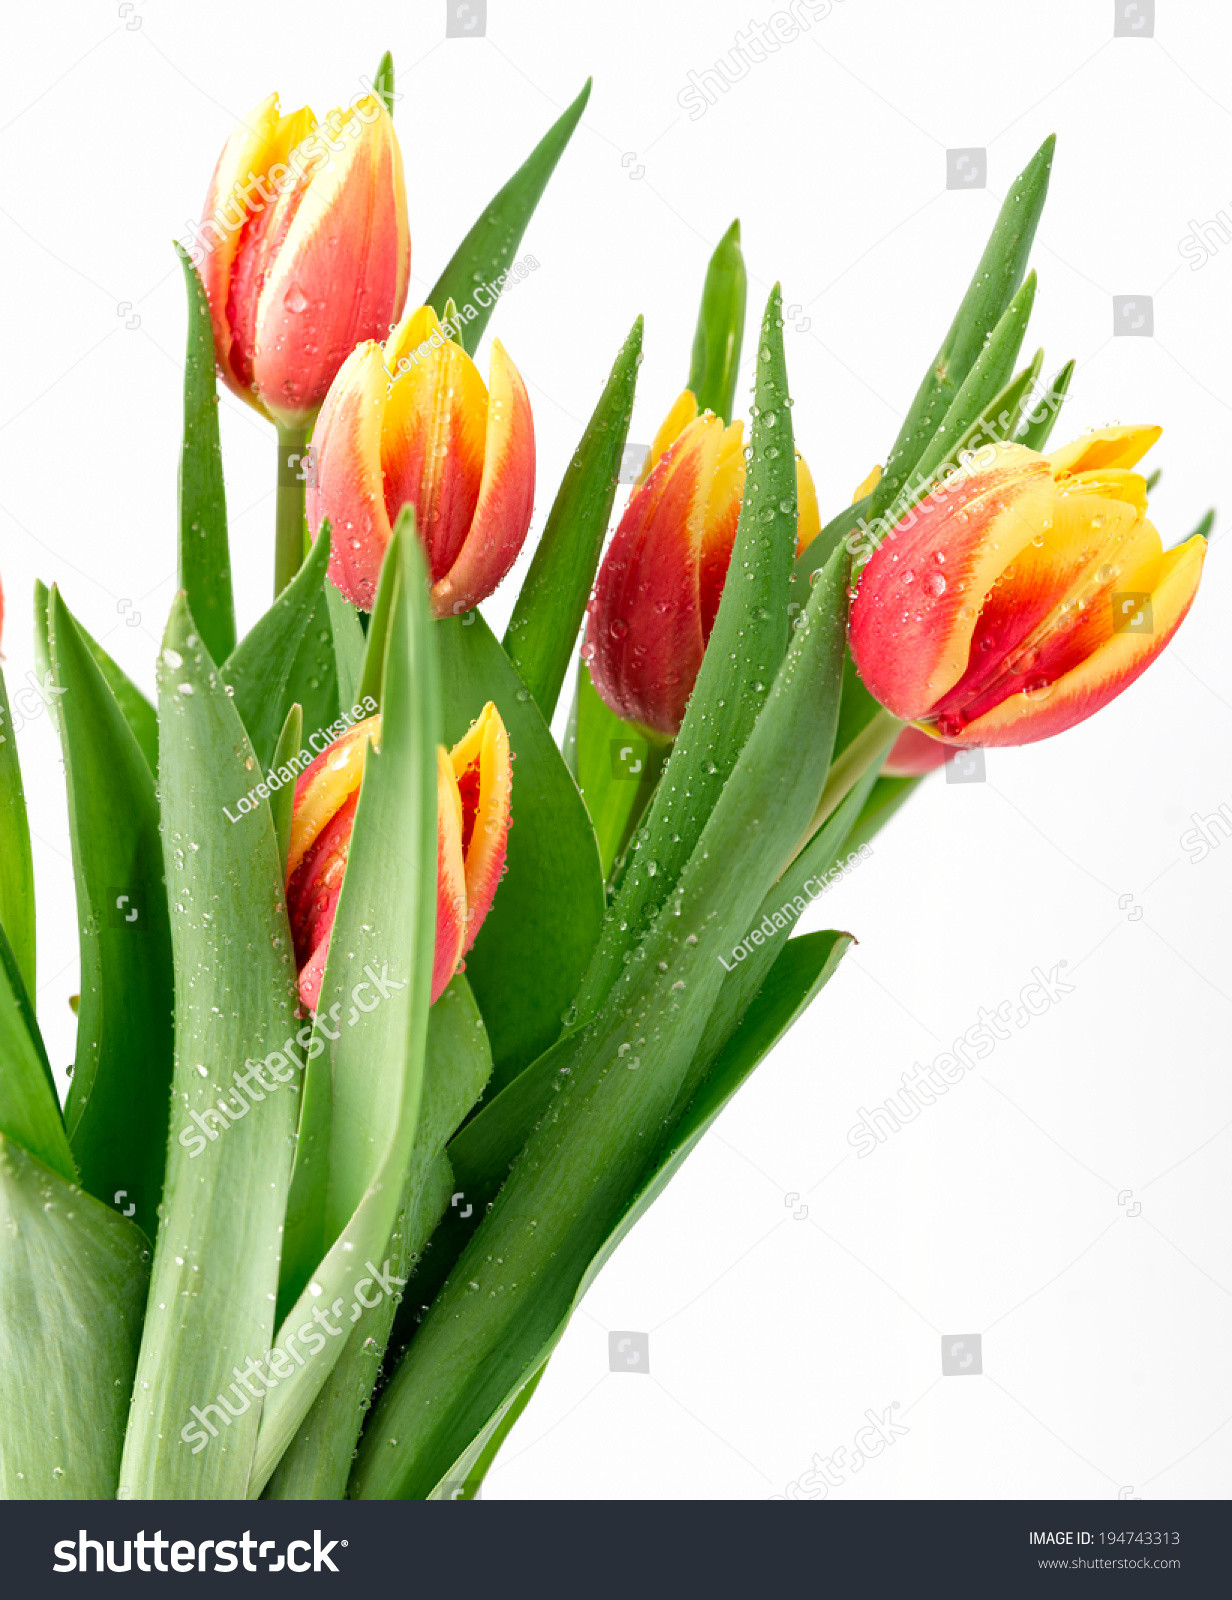 White Tulips In Glass Vase Of Bouquet Od Beautiful Tulips Vertical Ez Canvas within Stock Photo Tulips On White Background 194743313